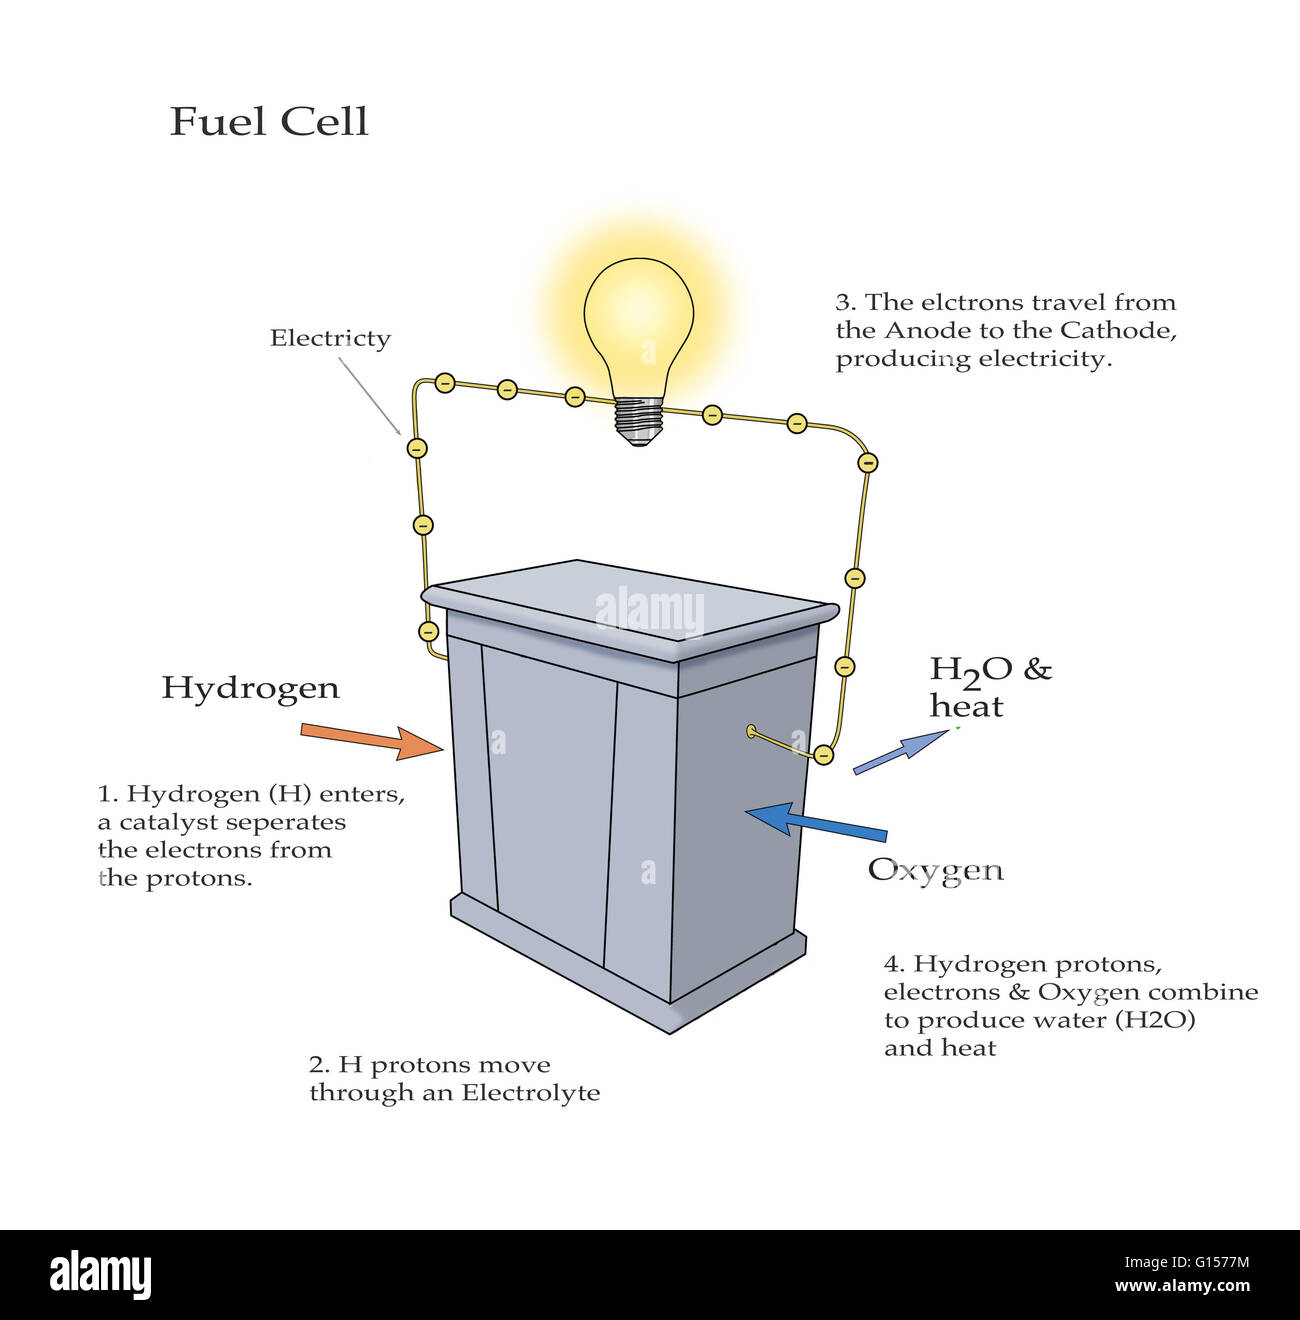 hight resolution of diagram illustrating how a fuel cell takes in hydrogen and oxygen and produces electricity with water and heat as byproducts hydrogen enters the cell